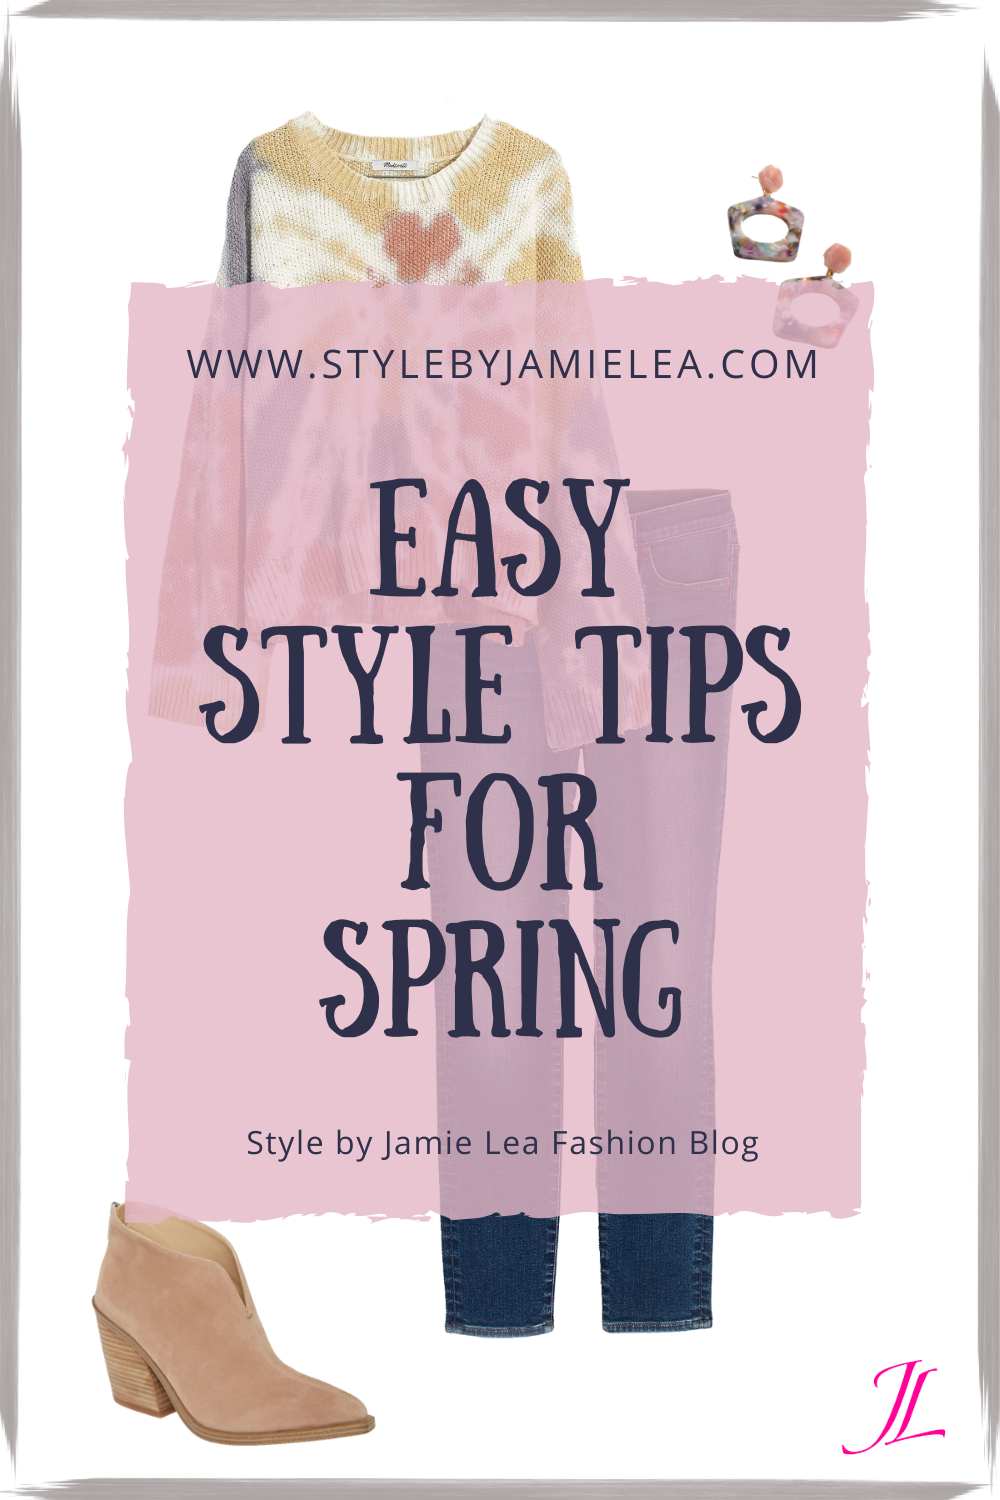 Easy Style Tips for Spring - Spring Fashion Style Tips for Women